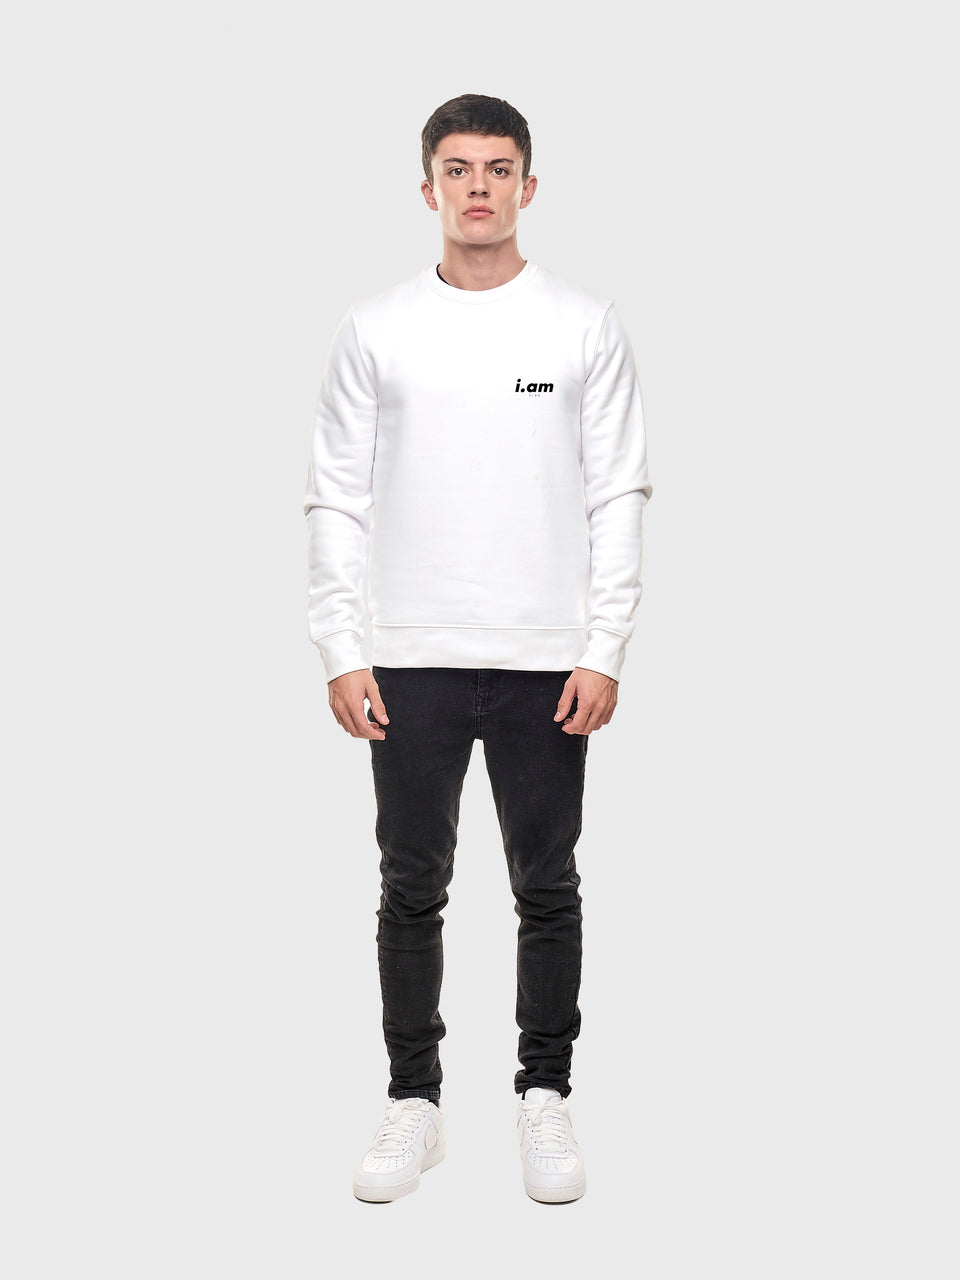 Made in London - White - Unisex sweatshirt